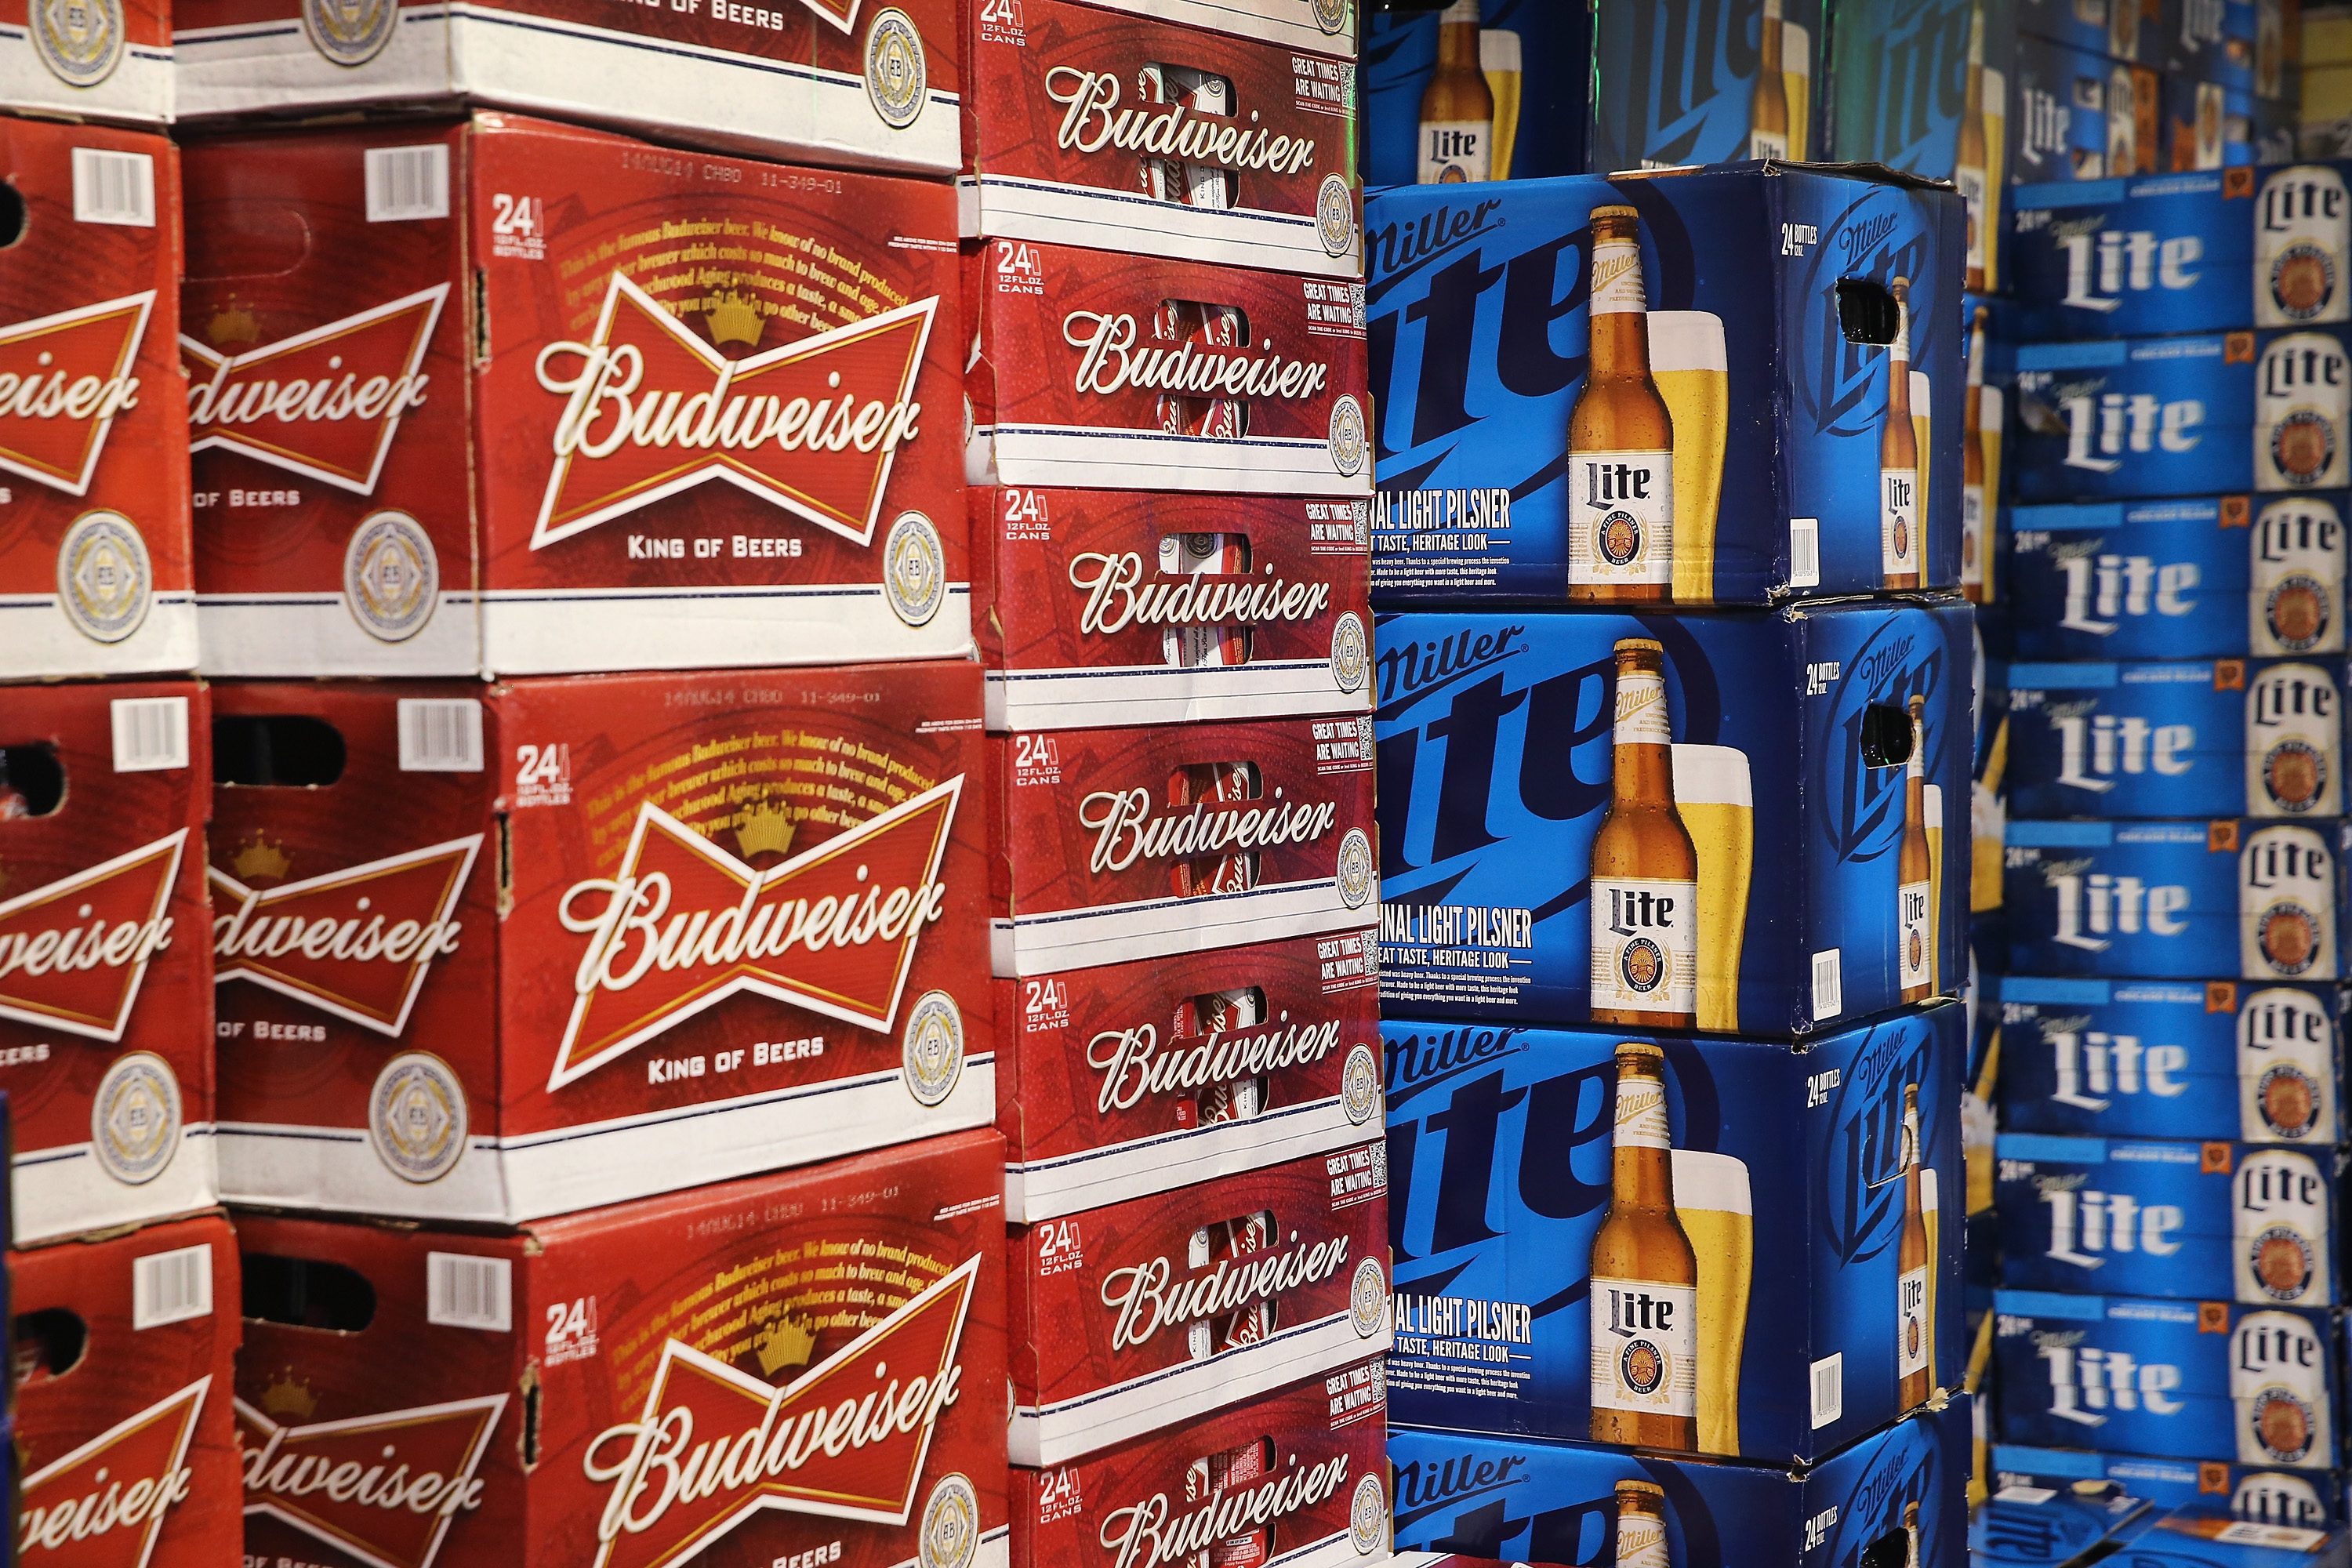 Anheuser-Busch (Photo by Scott Olson/Getty Images)